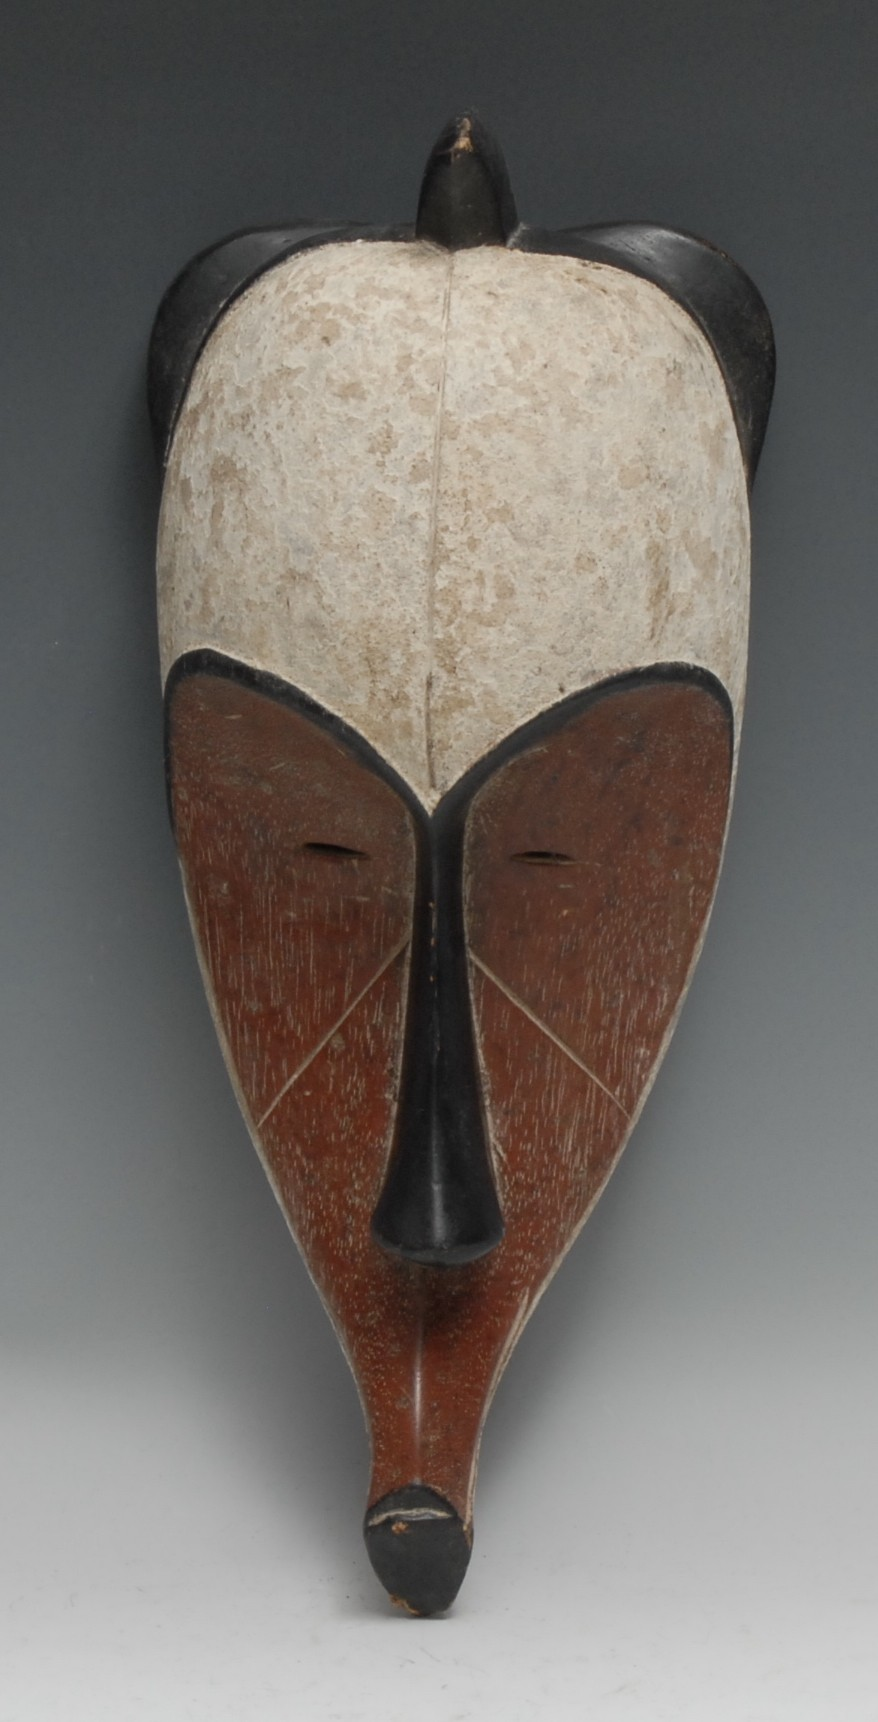 Tribal Art - a Fang Ngil mask, typically elongated concave stylised features, picked out with